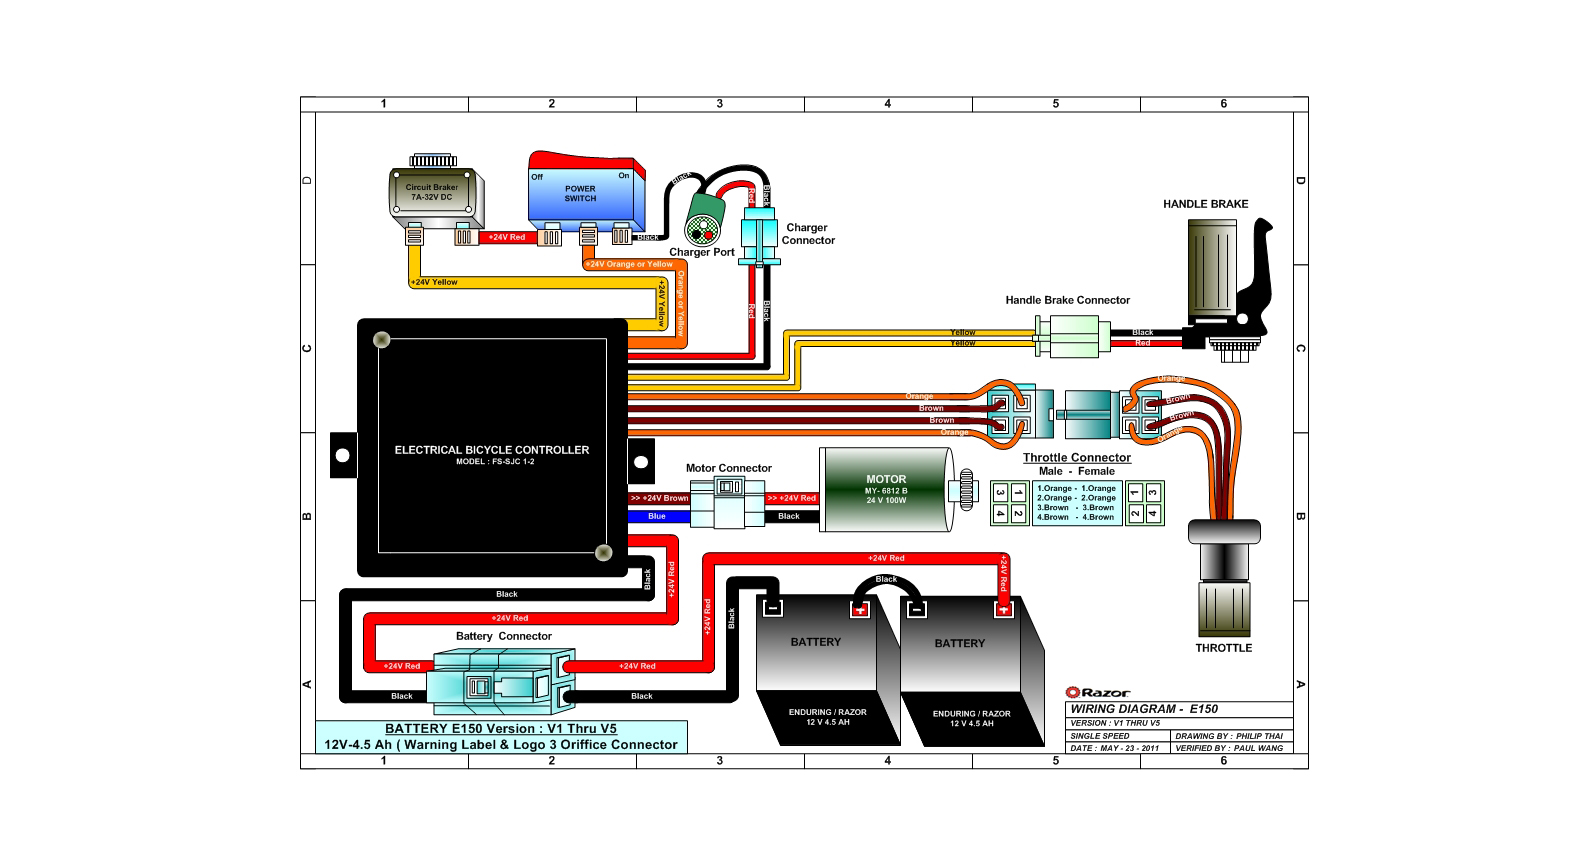 Razor E1 Series Wiring Diagrams